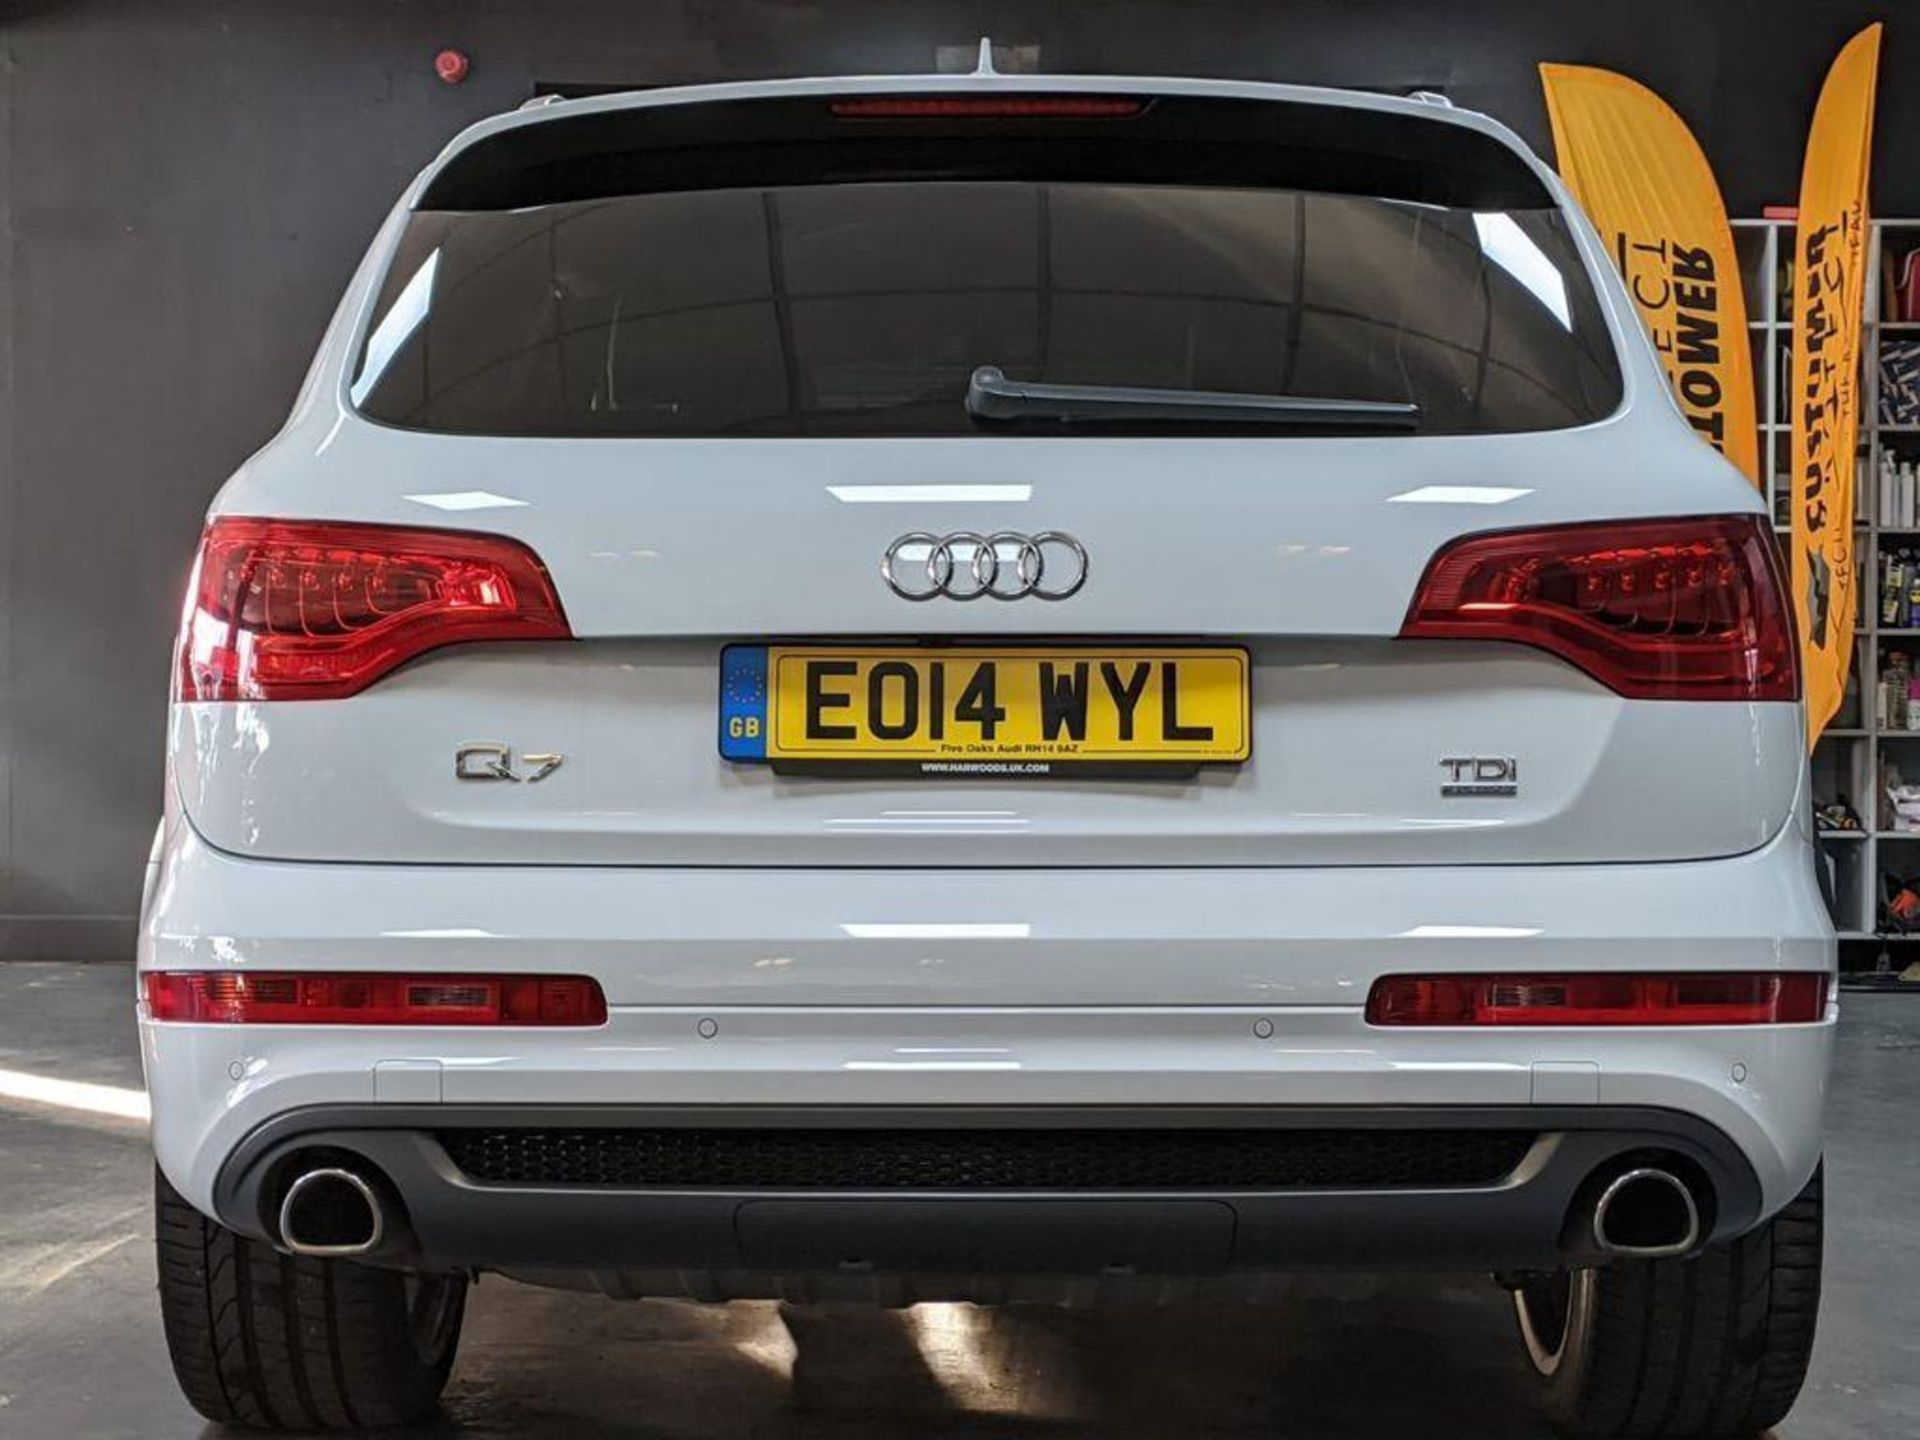 2014/14 REG AUDI Q7 S LINE + TDI QUATTRO 3.0 DIESEL AUTO 245 PS 7 SEAT, SHOWING 3 FORMER KEEPERS - Image 4 of 36